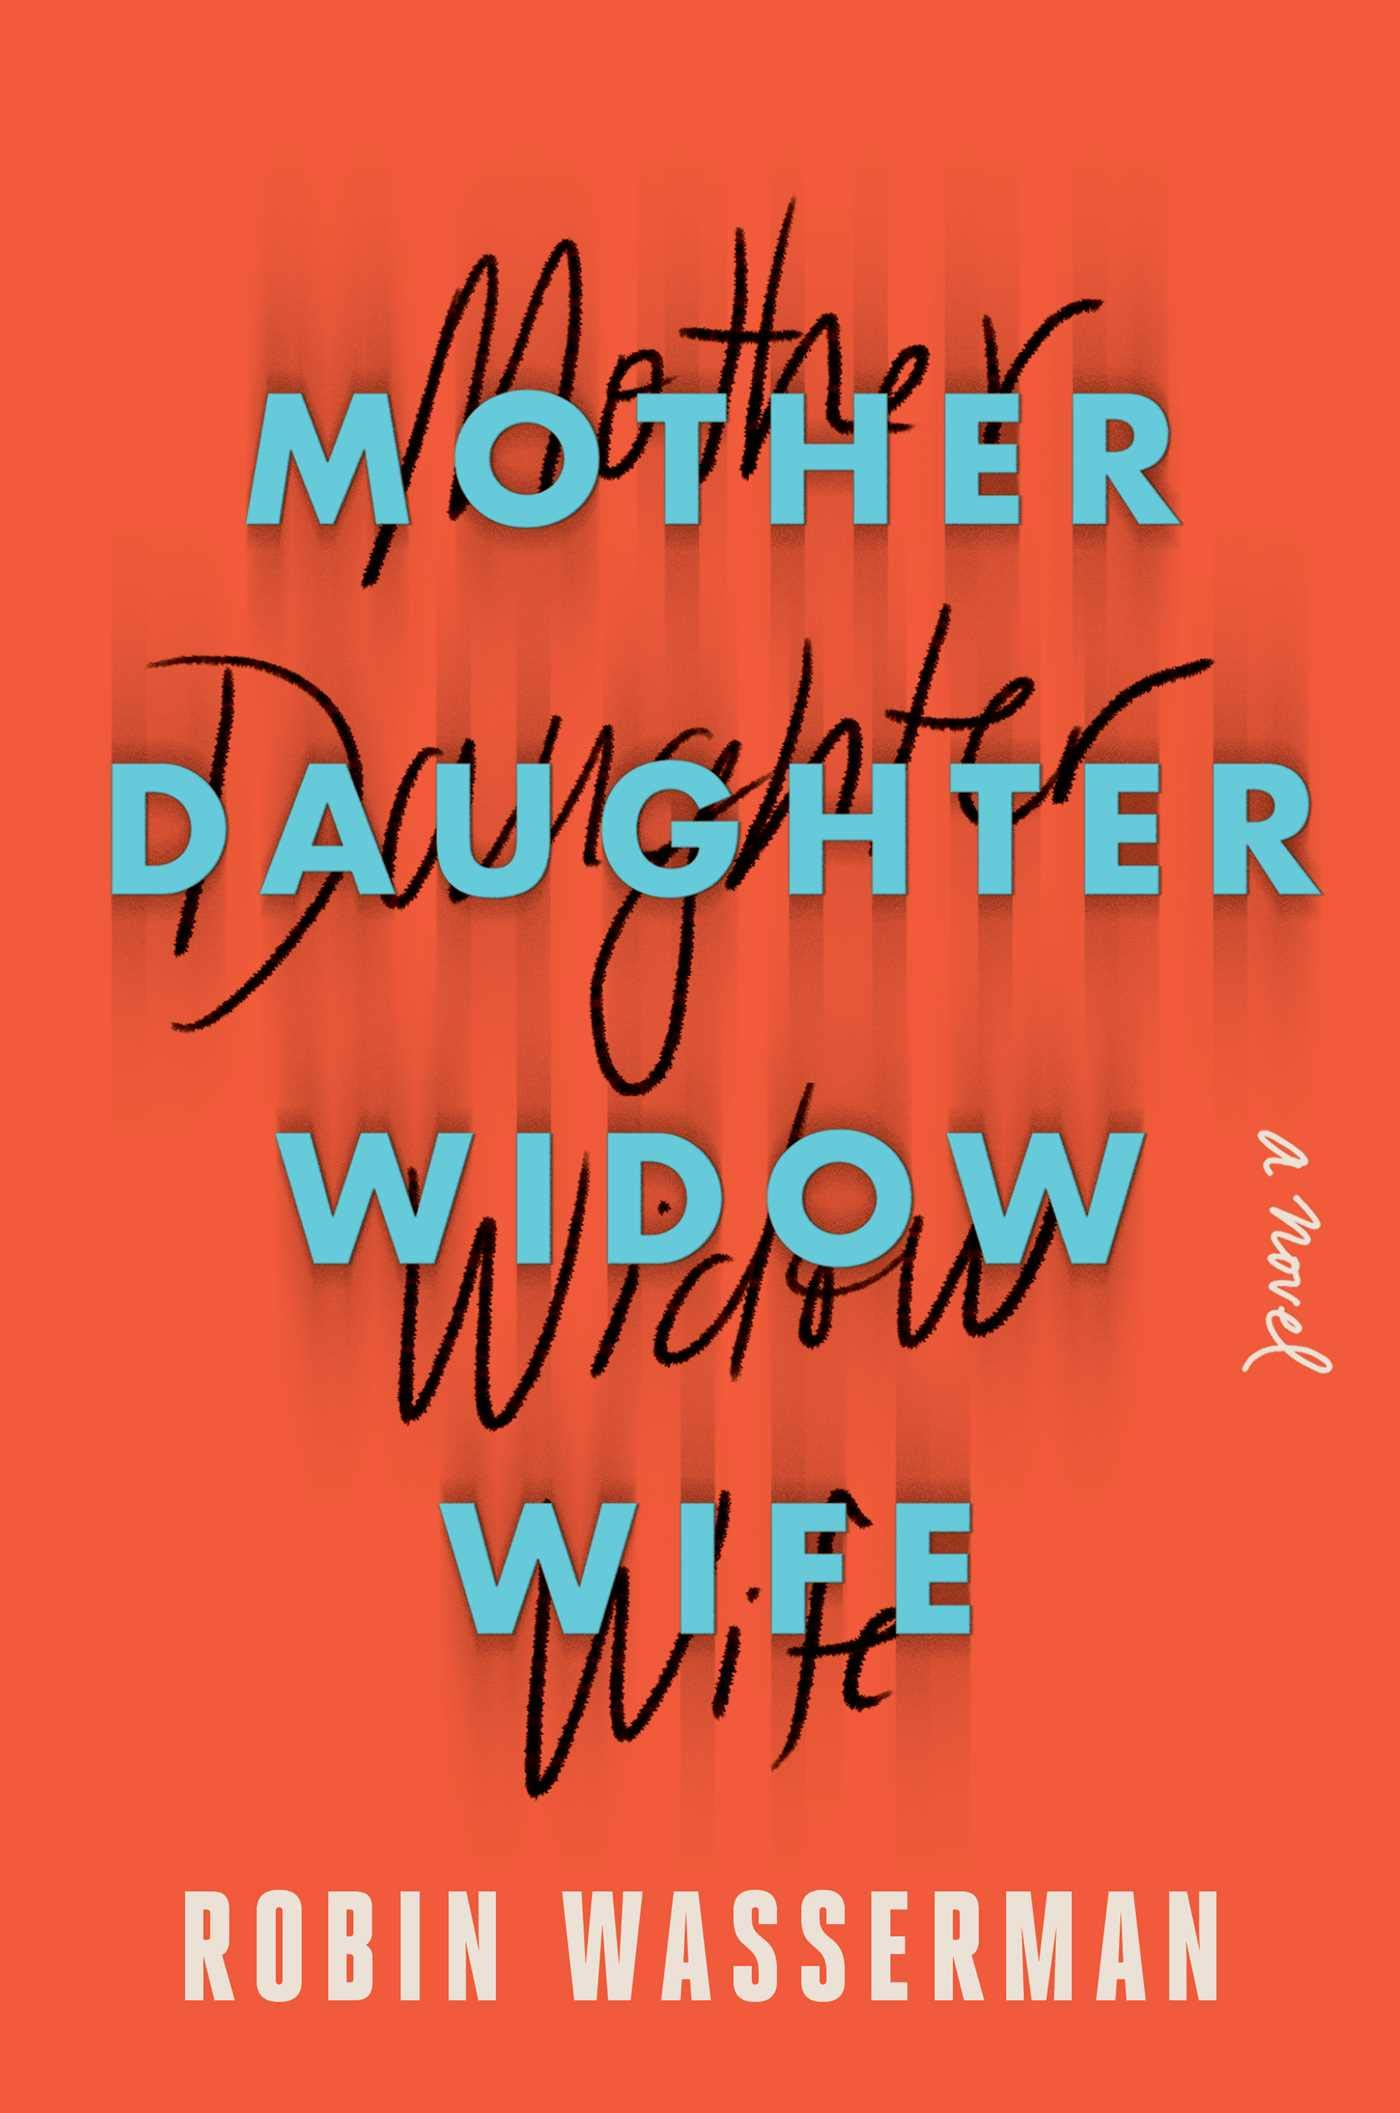 Lew's Book Reviews: Cover of Mother, Daughter, Widow, Wife